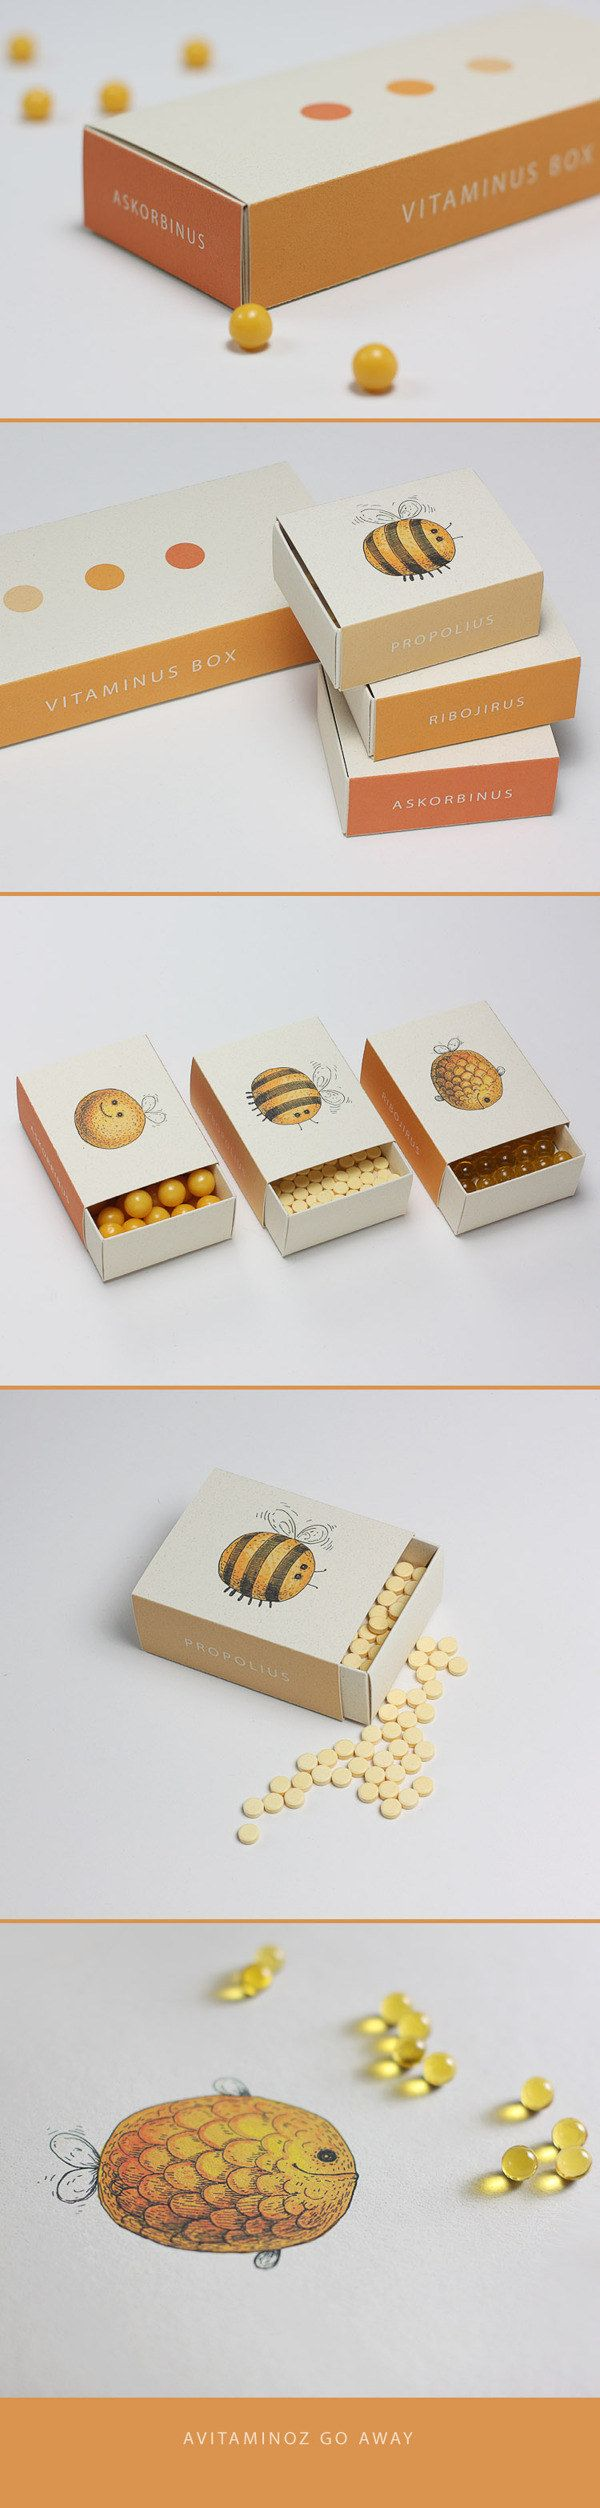 The cutest vitamin boxes imaginable. | 34 Aggressively Cute Packaging Ideas You Need To See